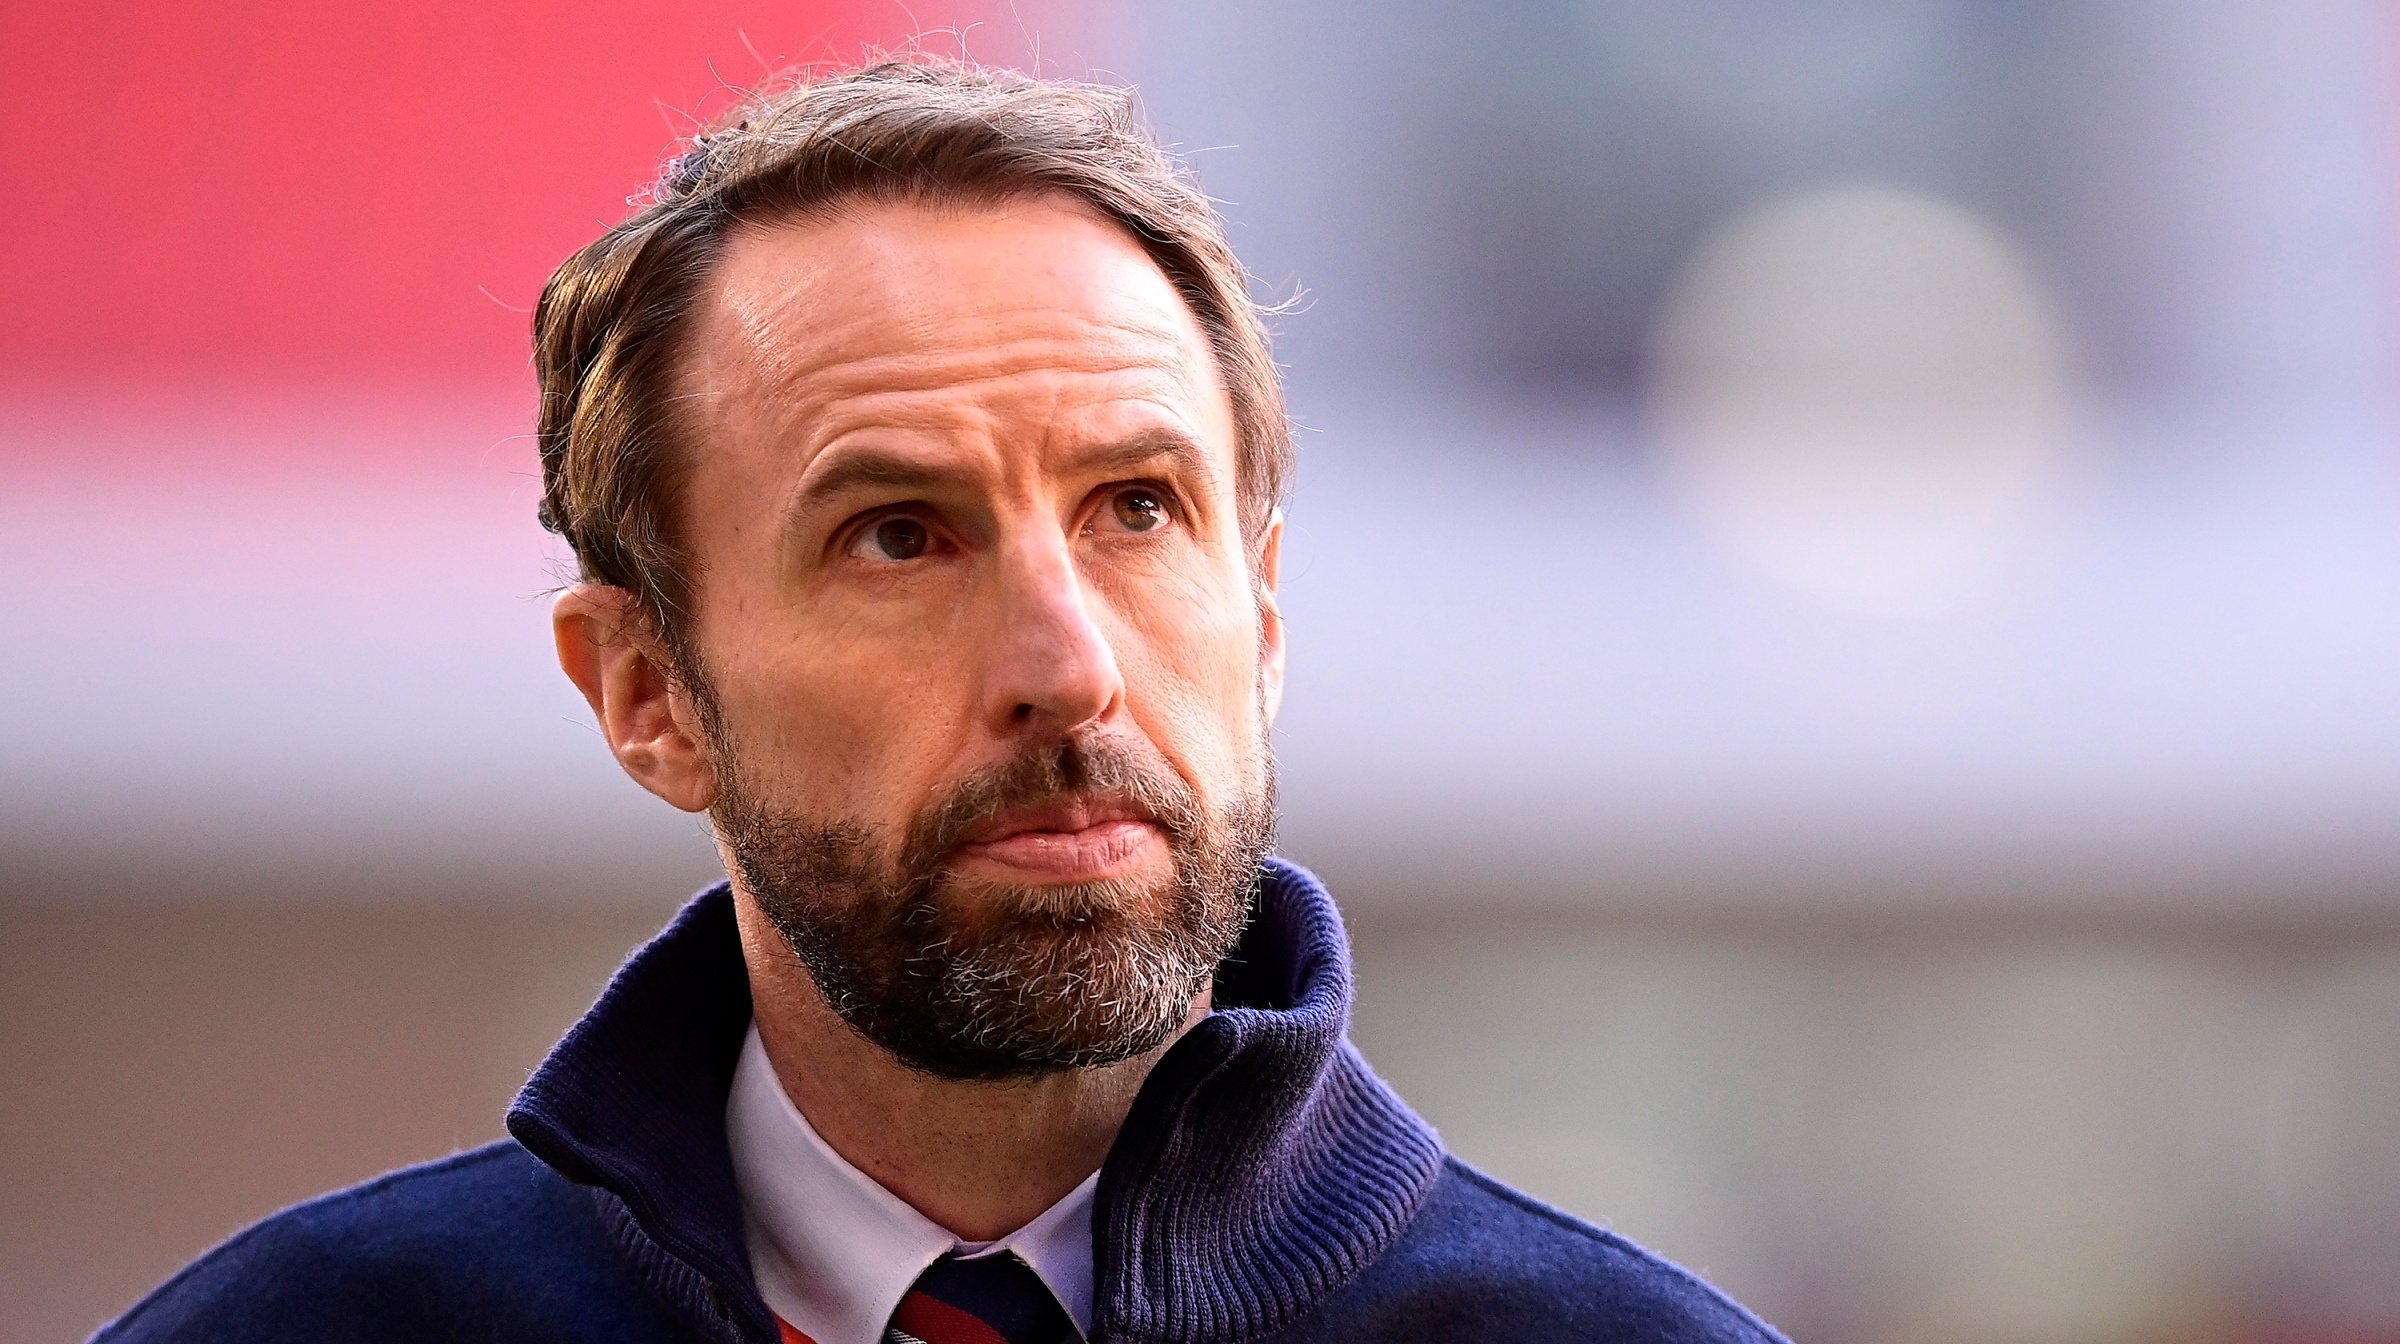 Gareth Southgate, Manager of England looks on prior to the FIFA World Cup 2022 Qatar qualifying match between Albania and England at the Qemal Stafa Stadium on March 28, 2021 in Tirana, Albania.